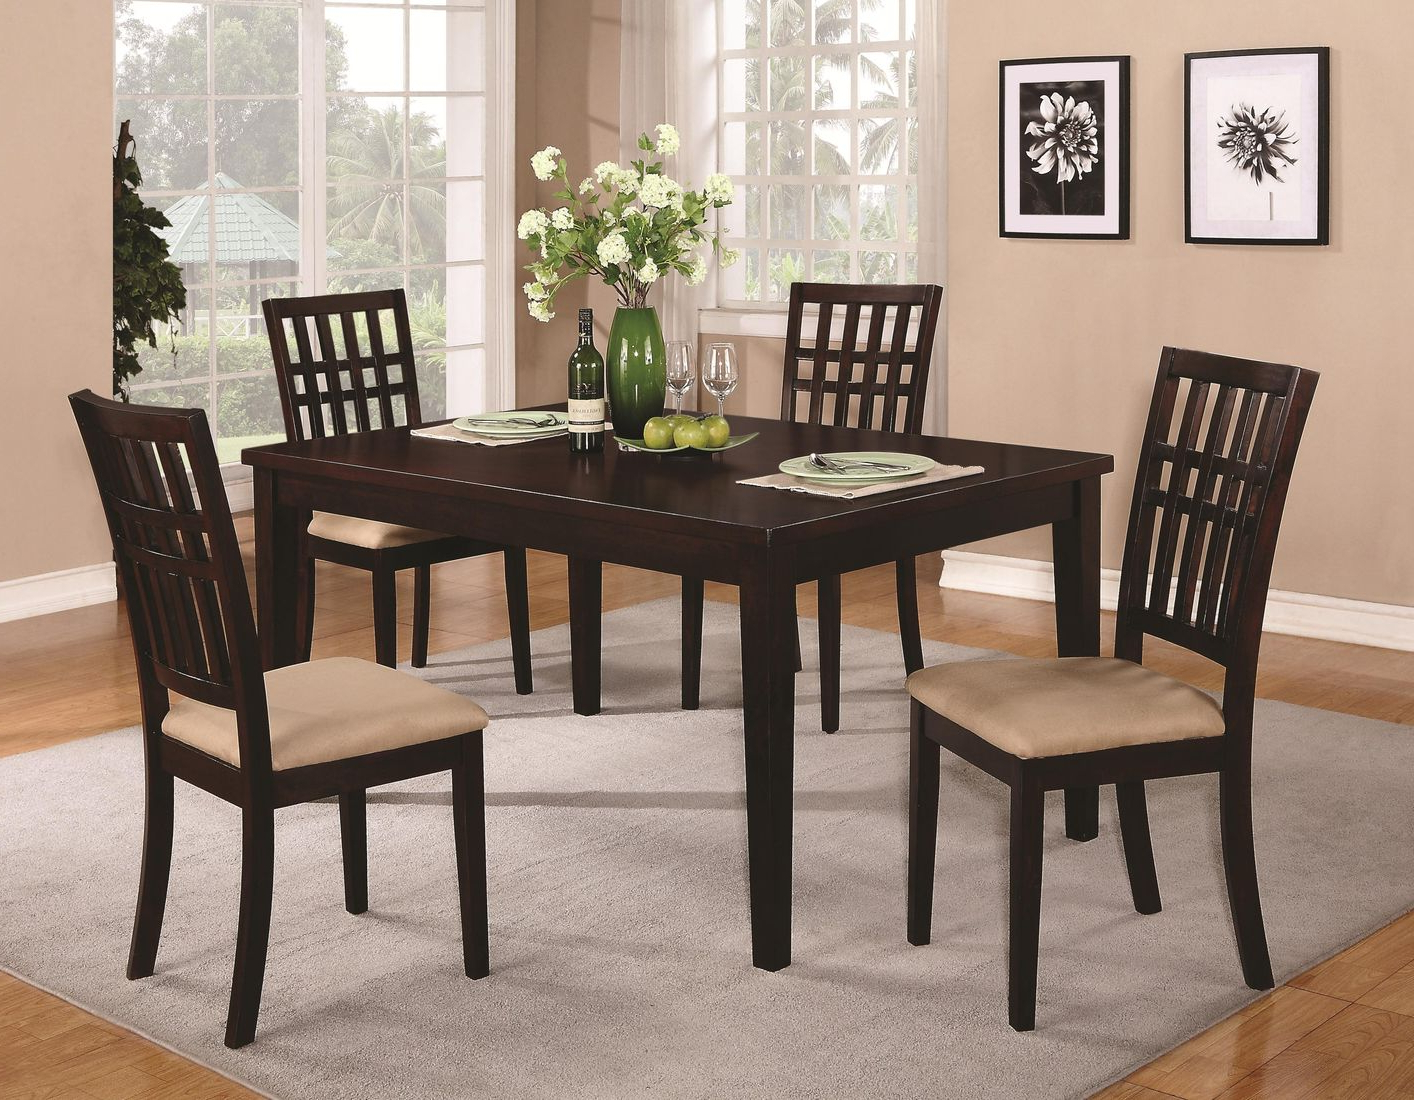 2019 Brandt Dark Cherry Wood Dining Table – Steal A Sofa Furniture Outlet Intended For Dining Table With Sofa Chairs (Gallery 19 of 20)